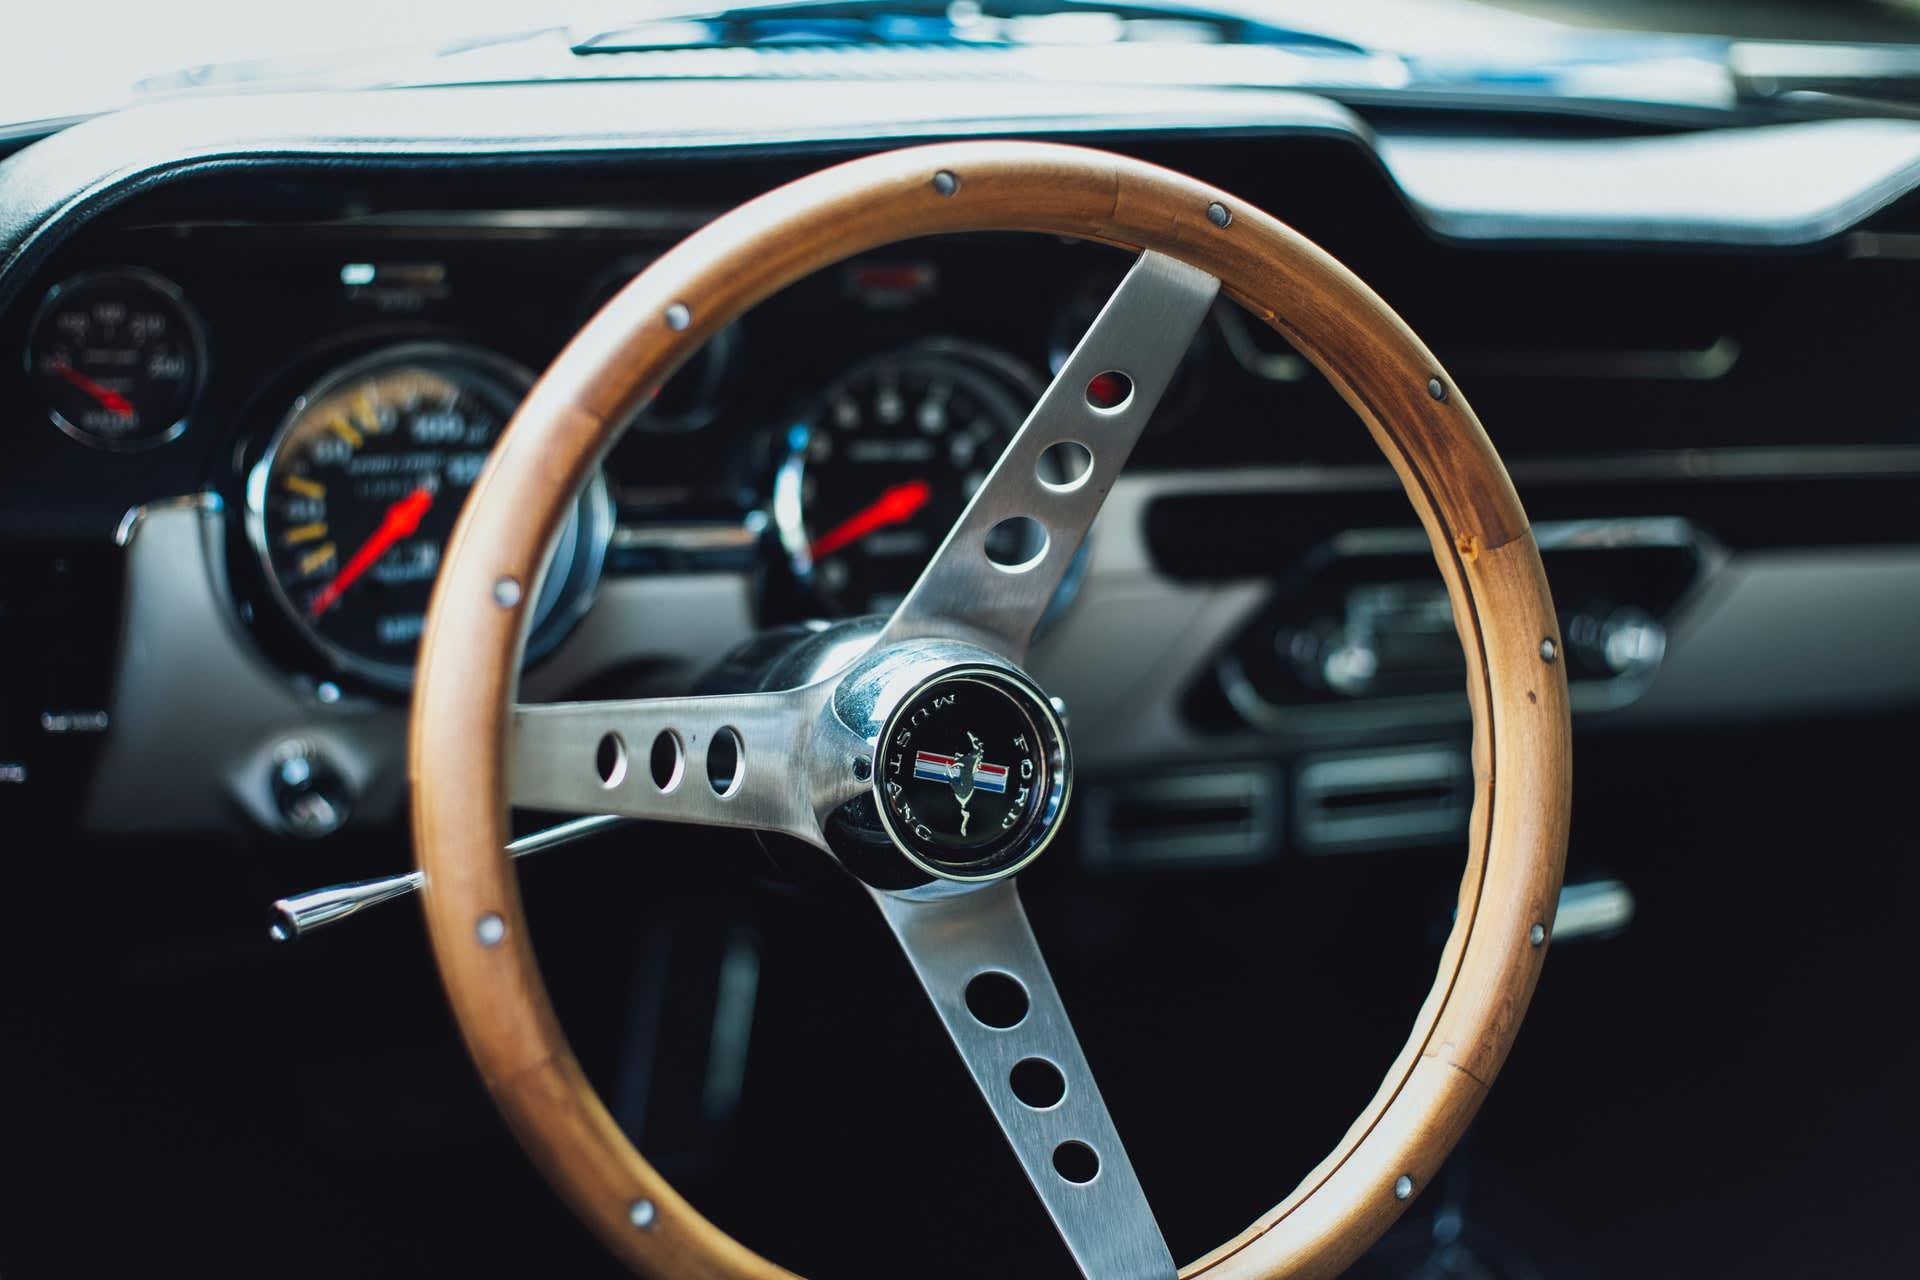 Photo of a Ford Mustang car steering wheel